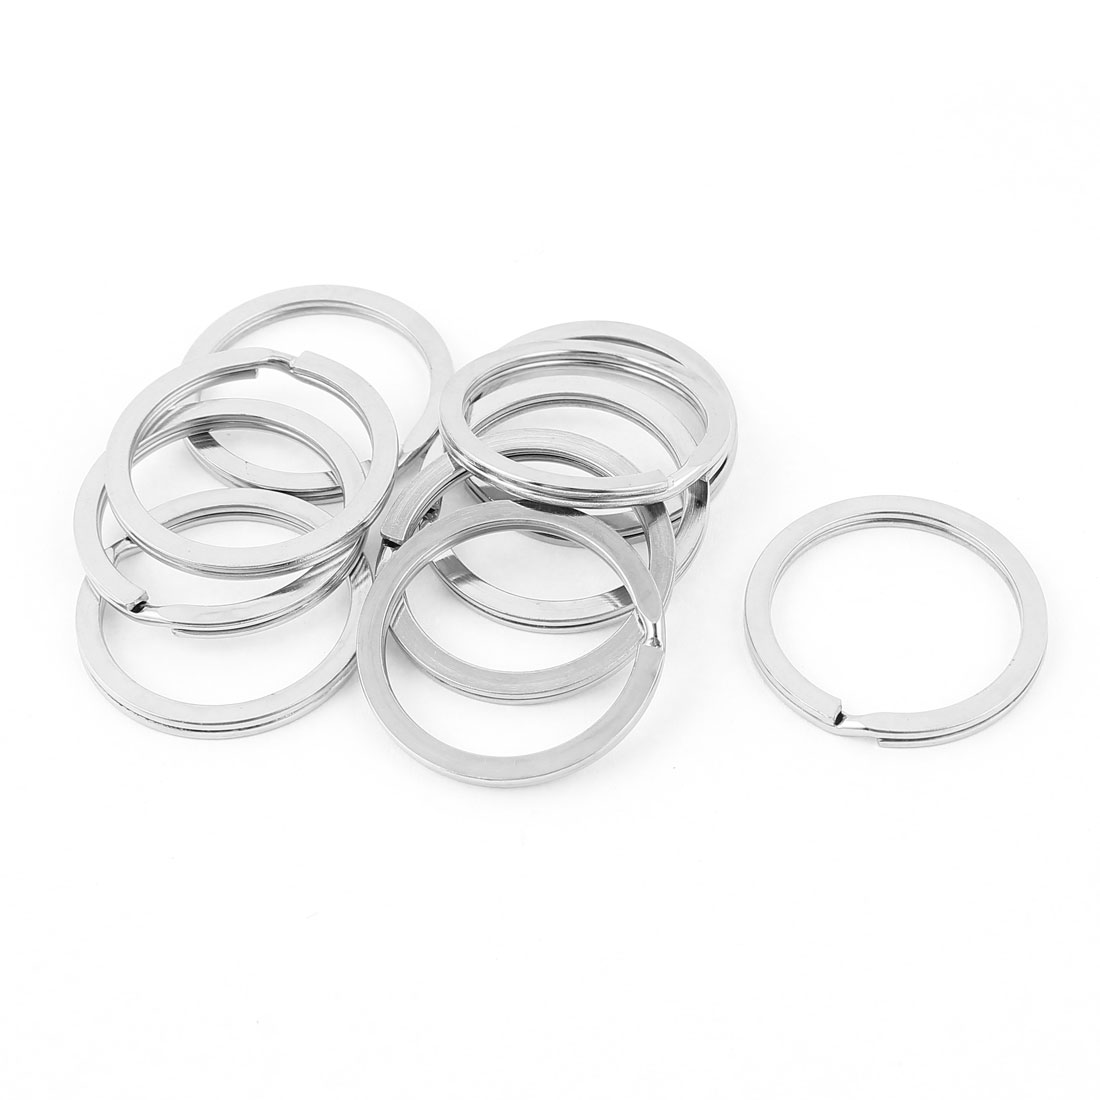 "10 PCS Sliver Tone 1.02"" Dia Metal Rings Replacement Split Loop Keyring Keys Holder"